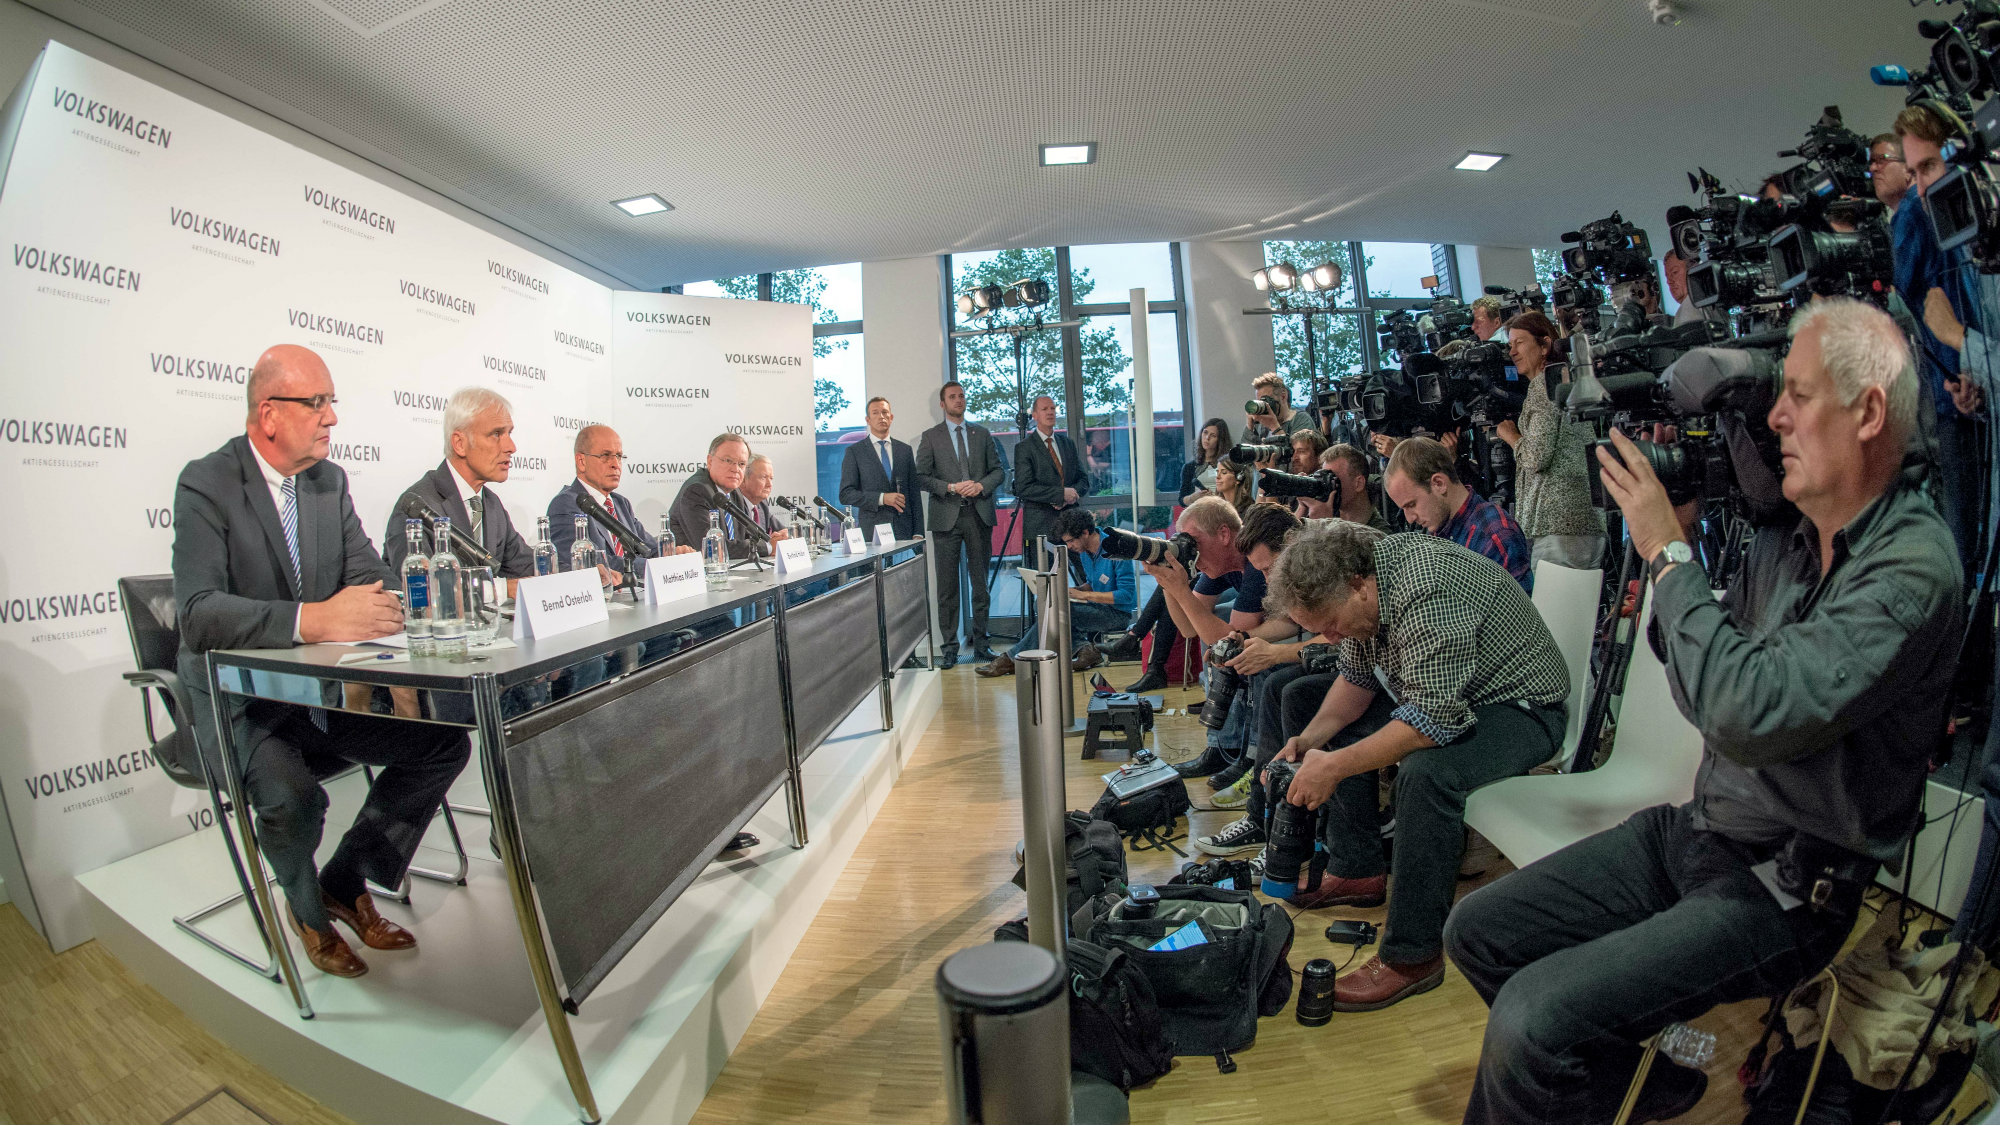 (L-R) Bernd Osterloh, works council chairman at Volkswagen; Matthias Mueller, the new chief executive of Volkswagen AG; Bernd Huber, chairman of the supervisory board; Stephan Weil, minister president of Lower Saxony; and Wolfgang Porsche, member of the supervisory board, attend a press conference at the VW factory in Wolfsburg, Germany, 25 September 2015.